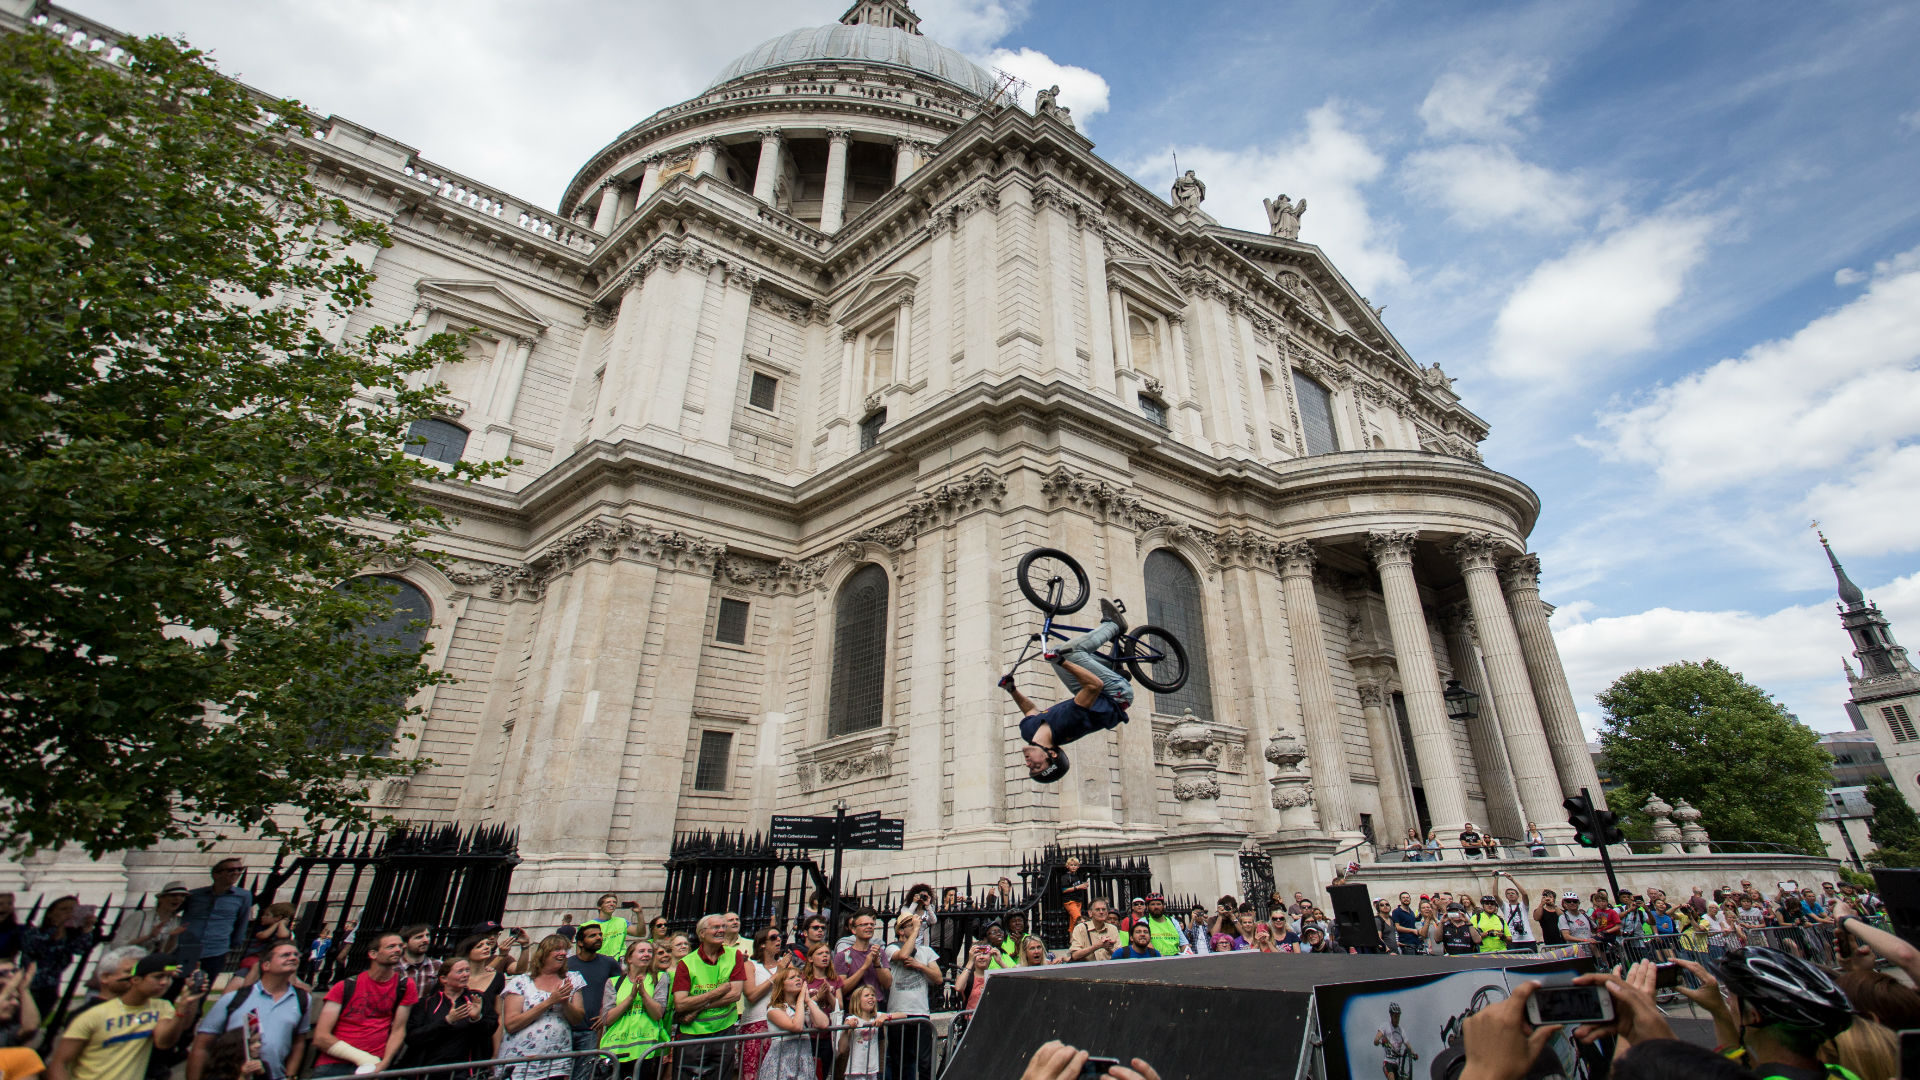 A cyclist does a backflip at the St Pauls Prudential RideLondon Festival Zone. Image courtesy of RideLondon